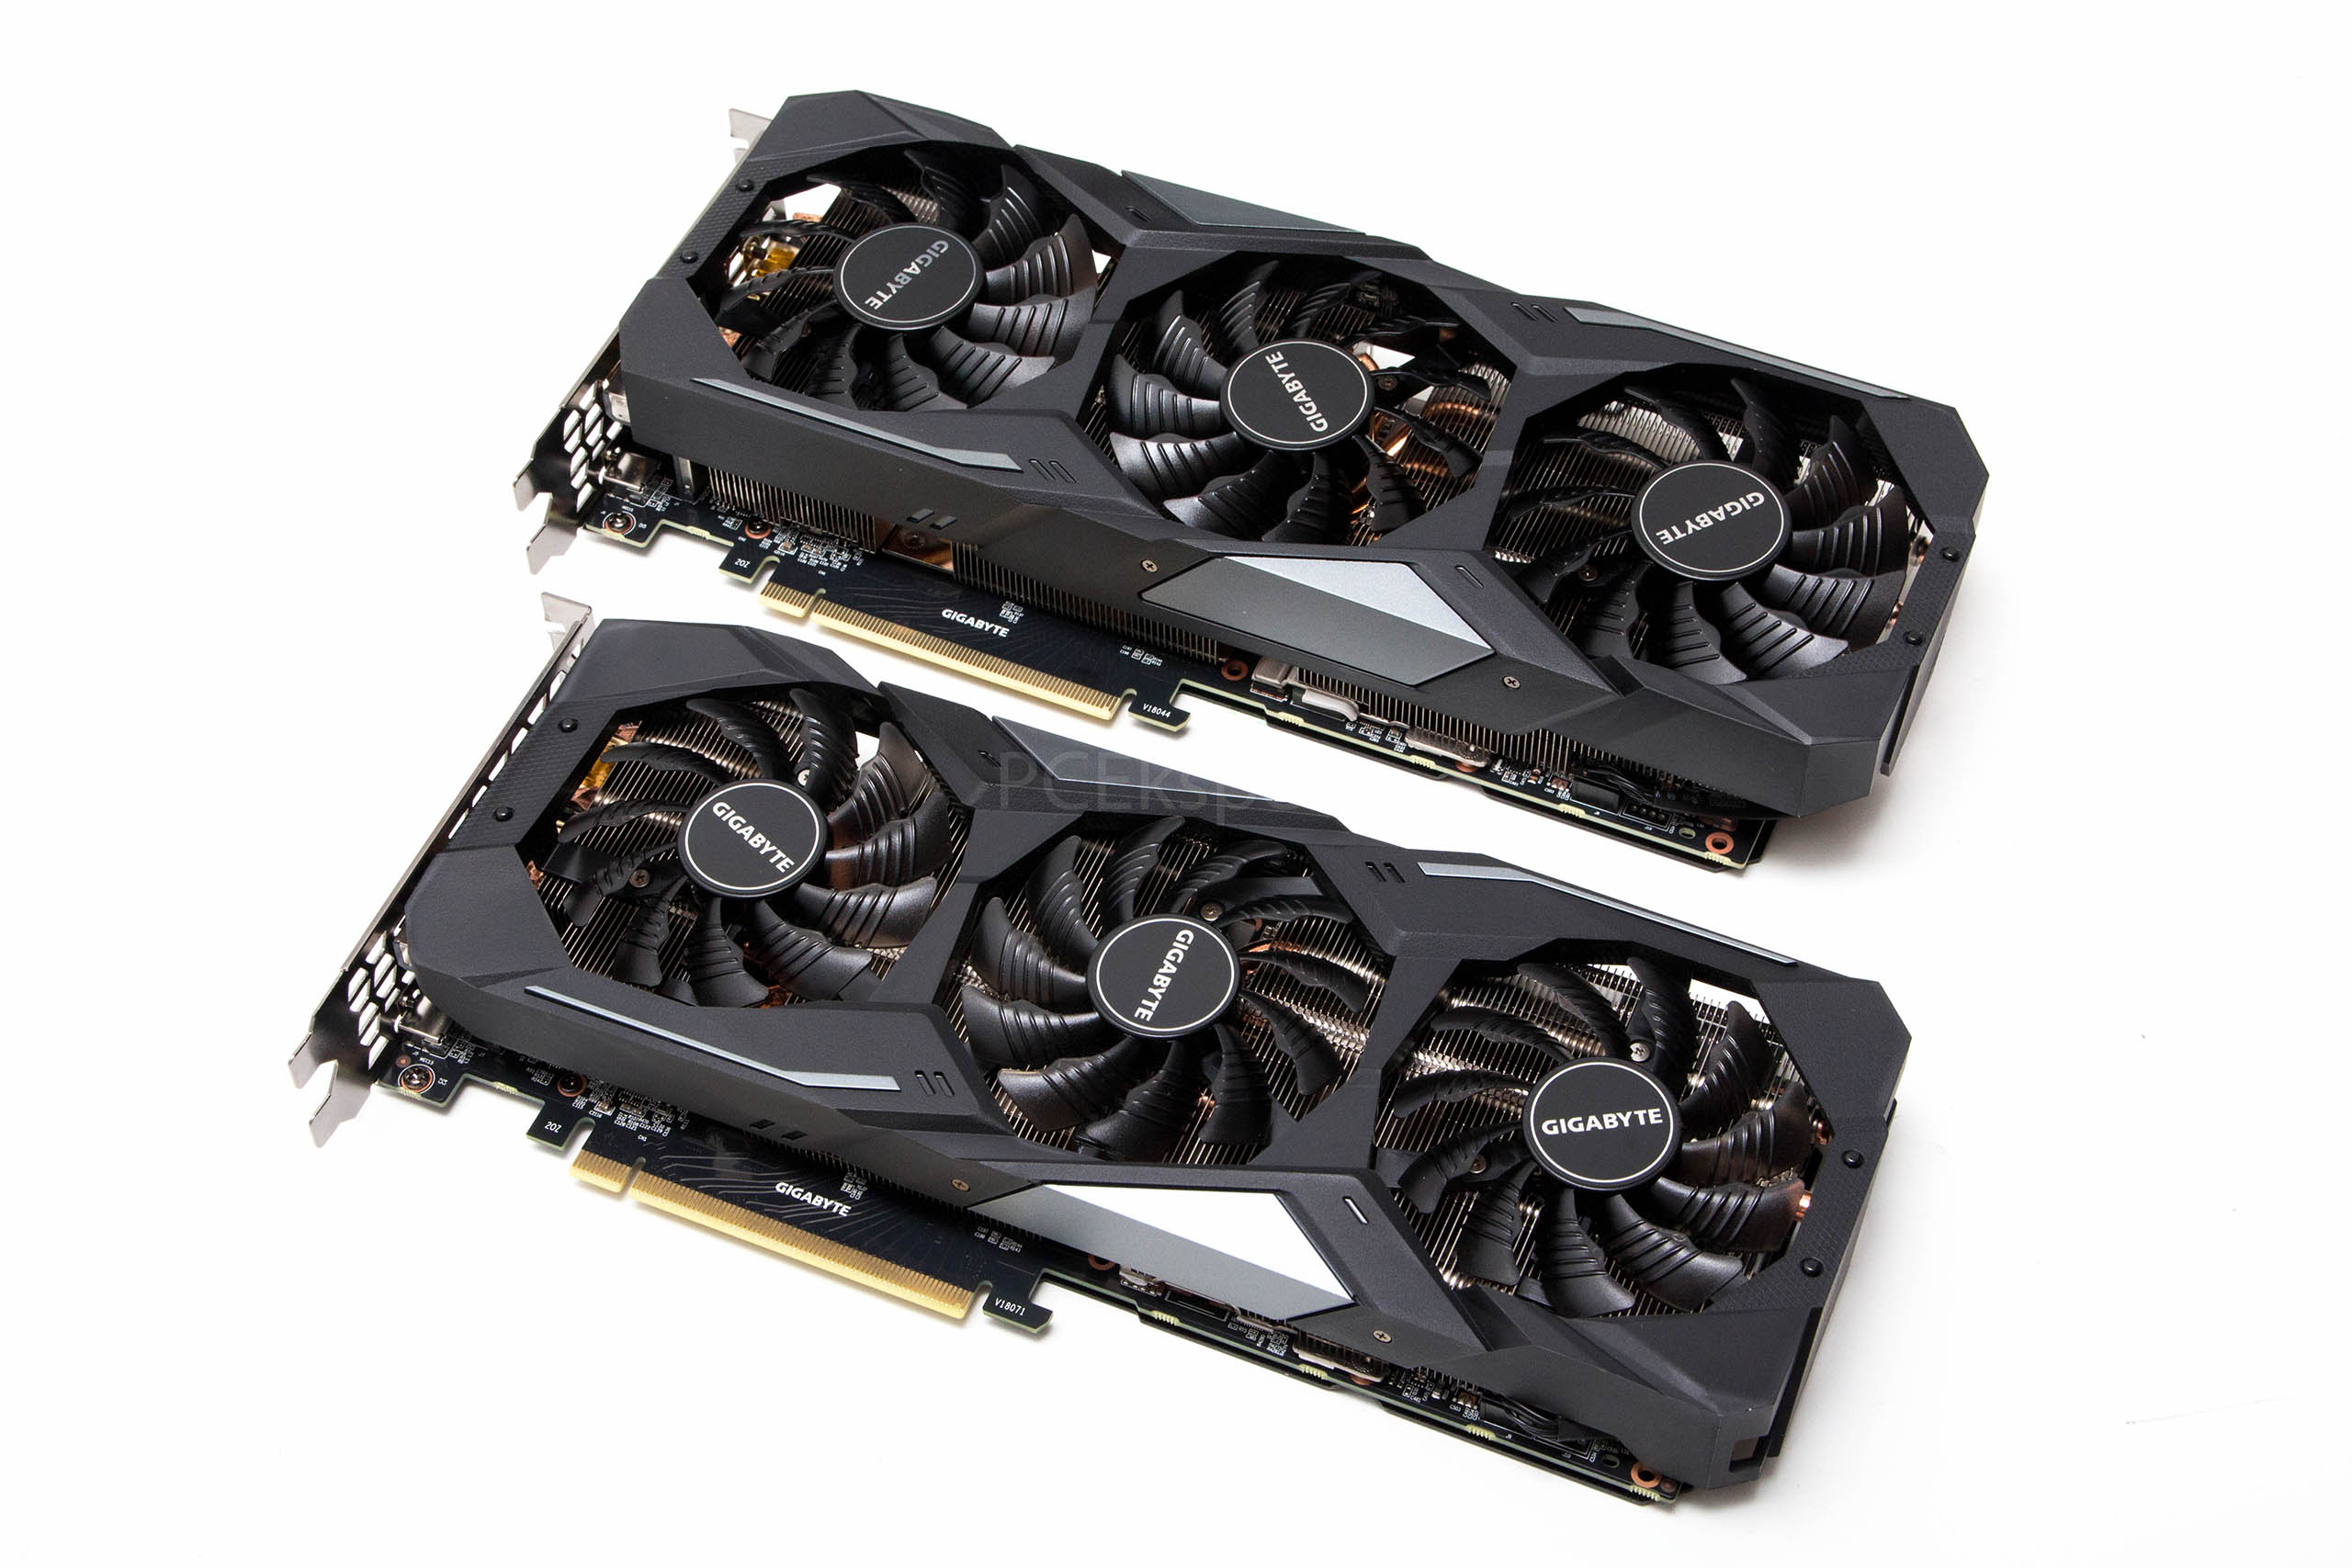 Gigabyte RTX 2060 Super Gaming OC & RTX 2070 Super Gaming OC recenzija